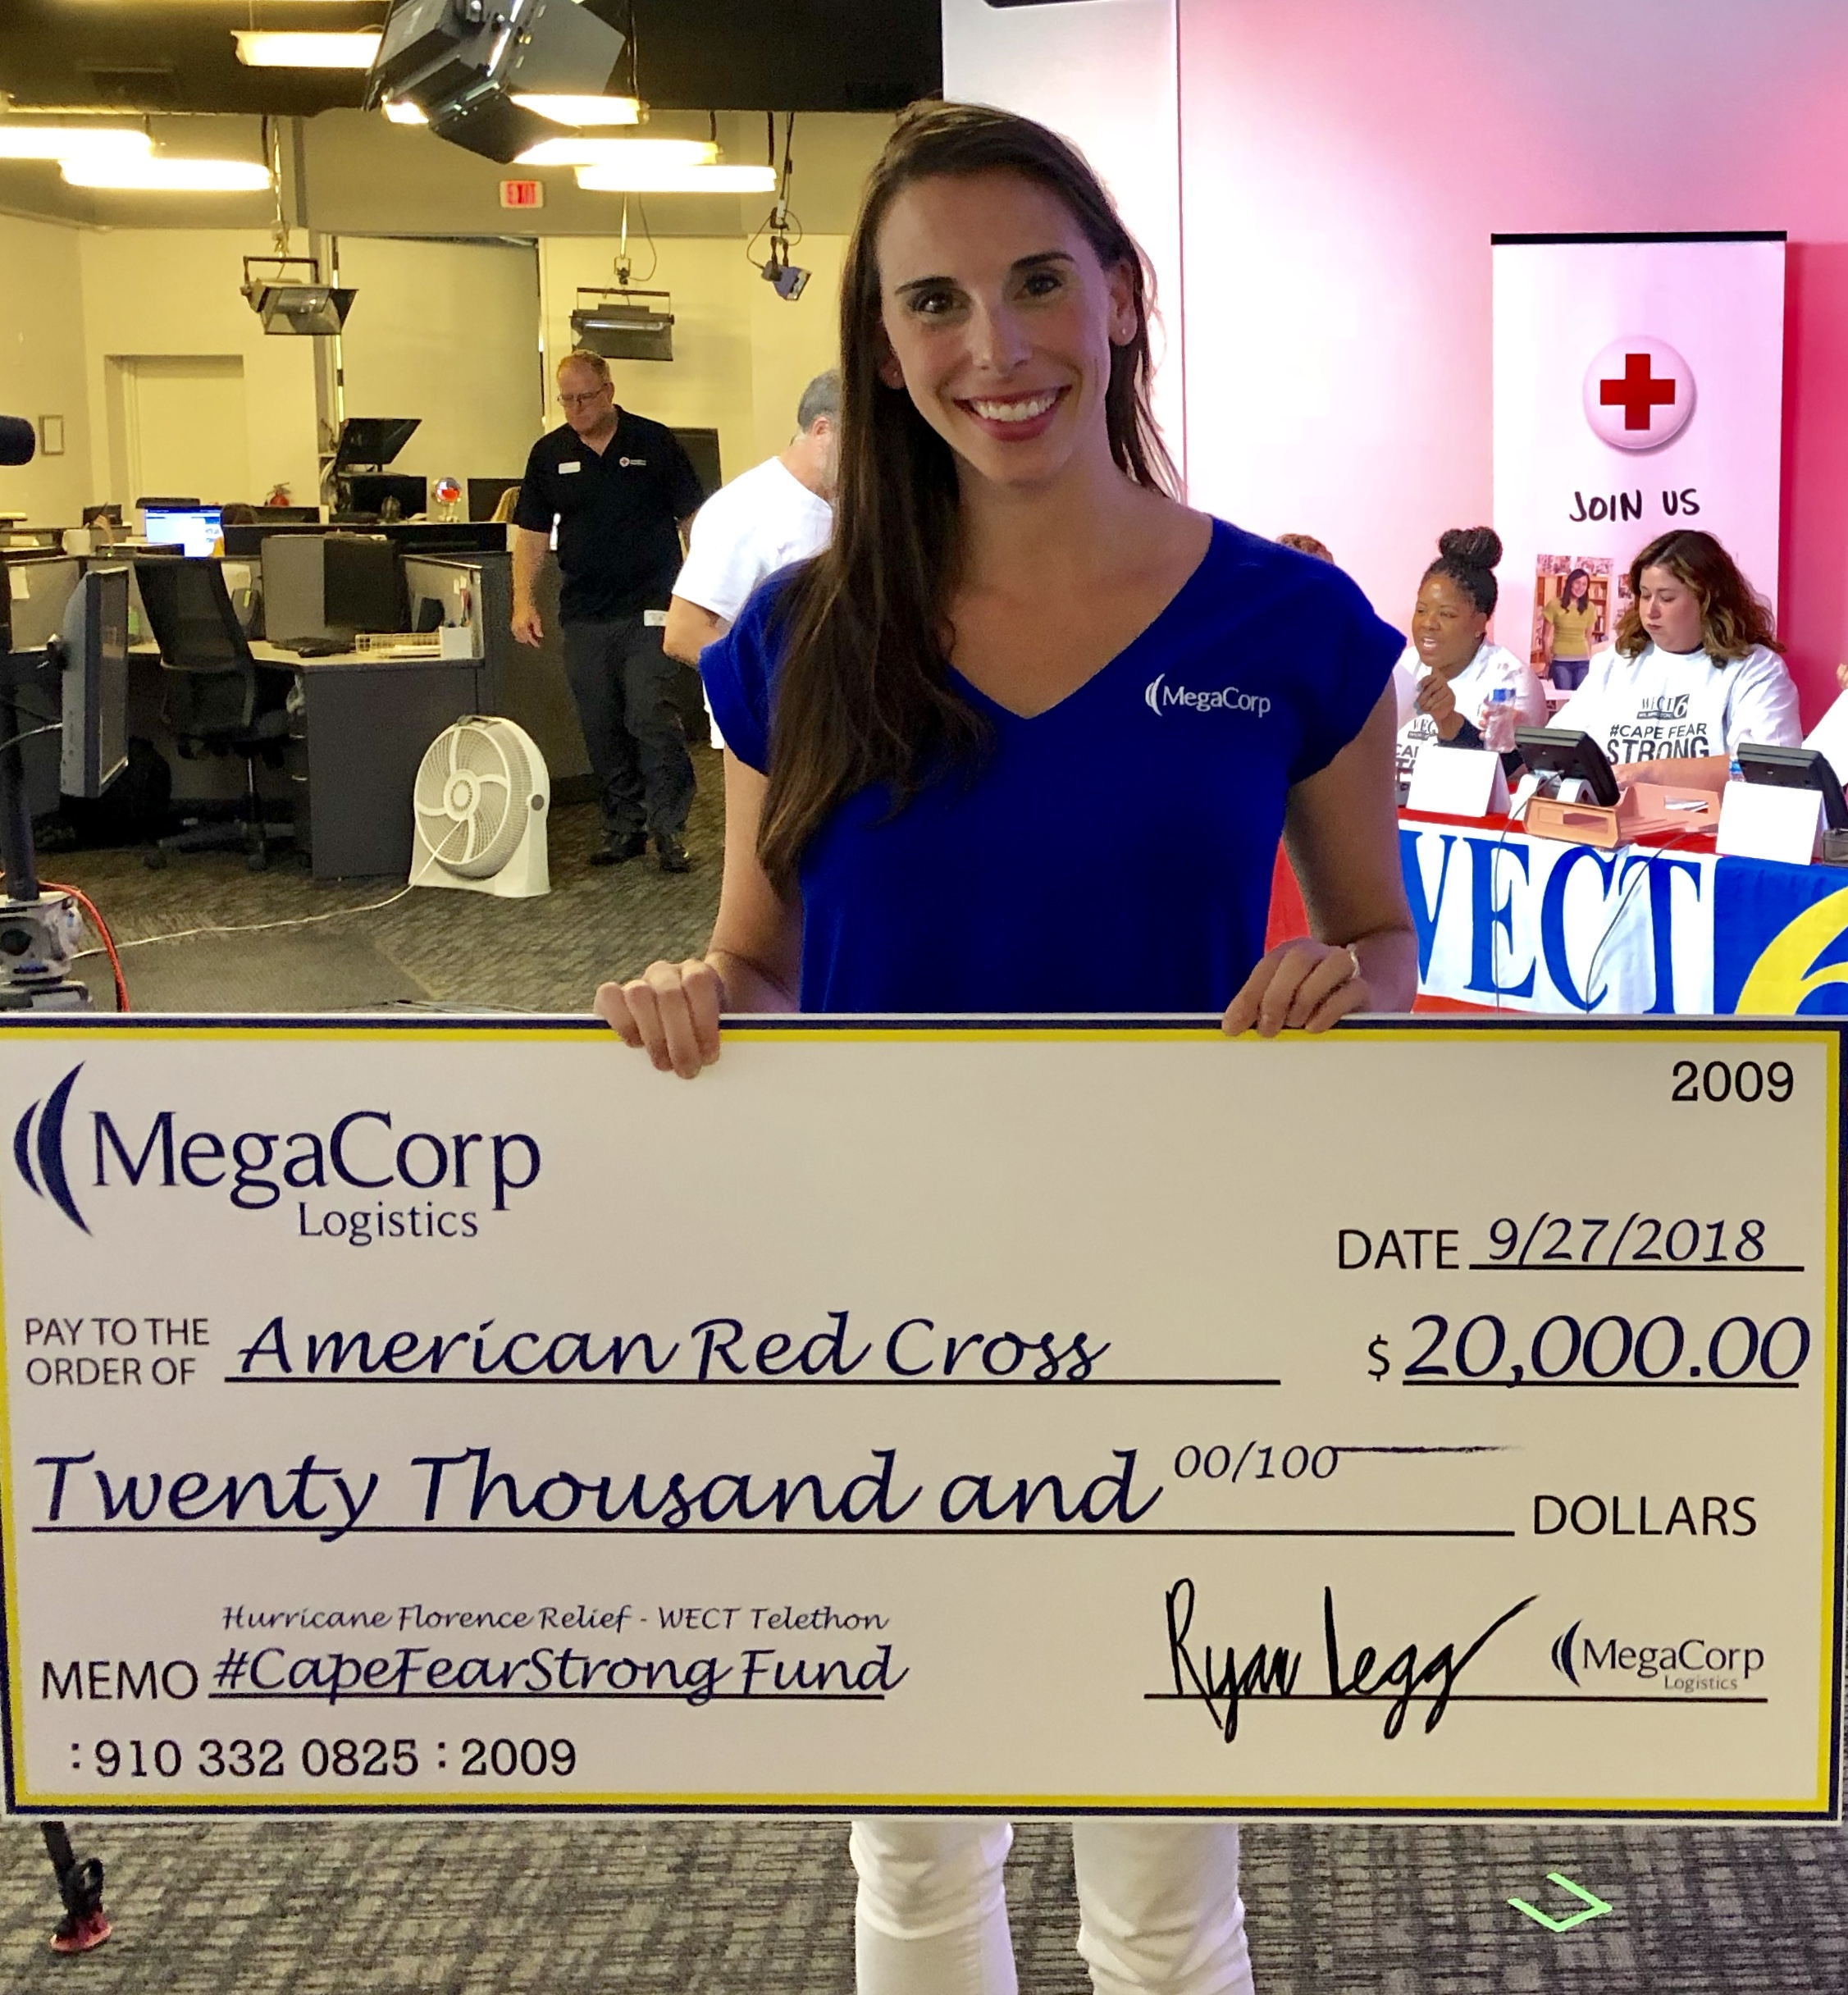 Katie holding up a giant check made out to the American Red Cross for $20,000 for Hurricane Florence Relief.